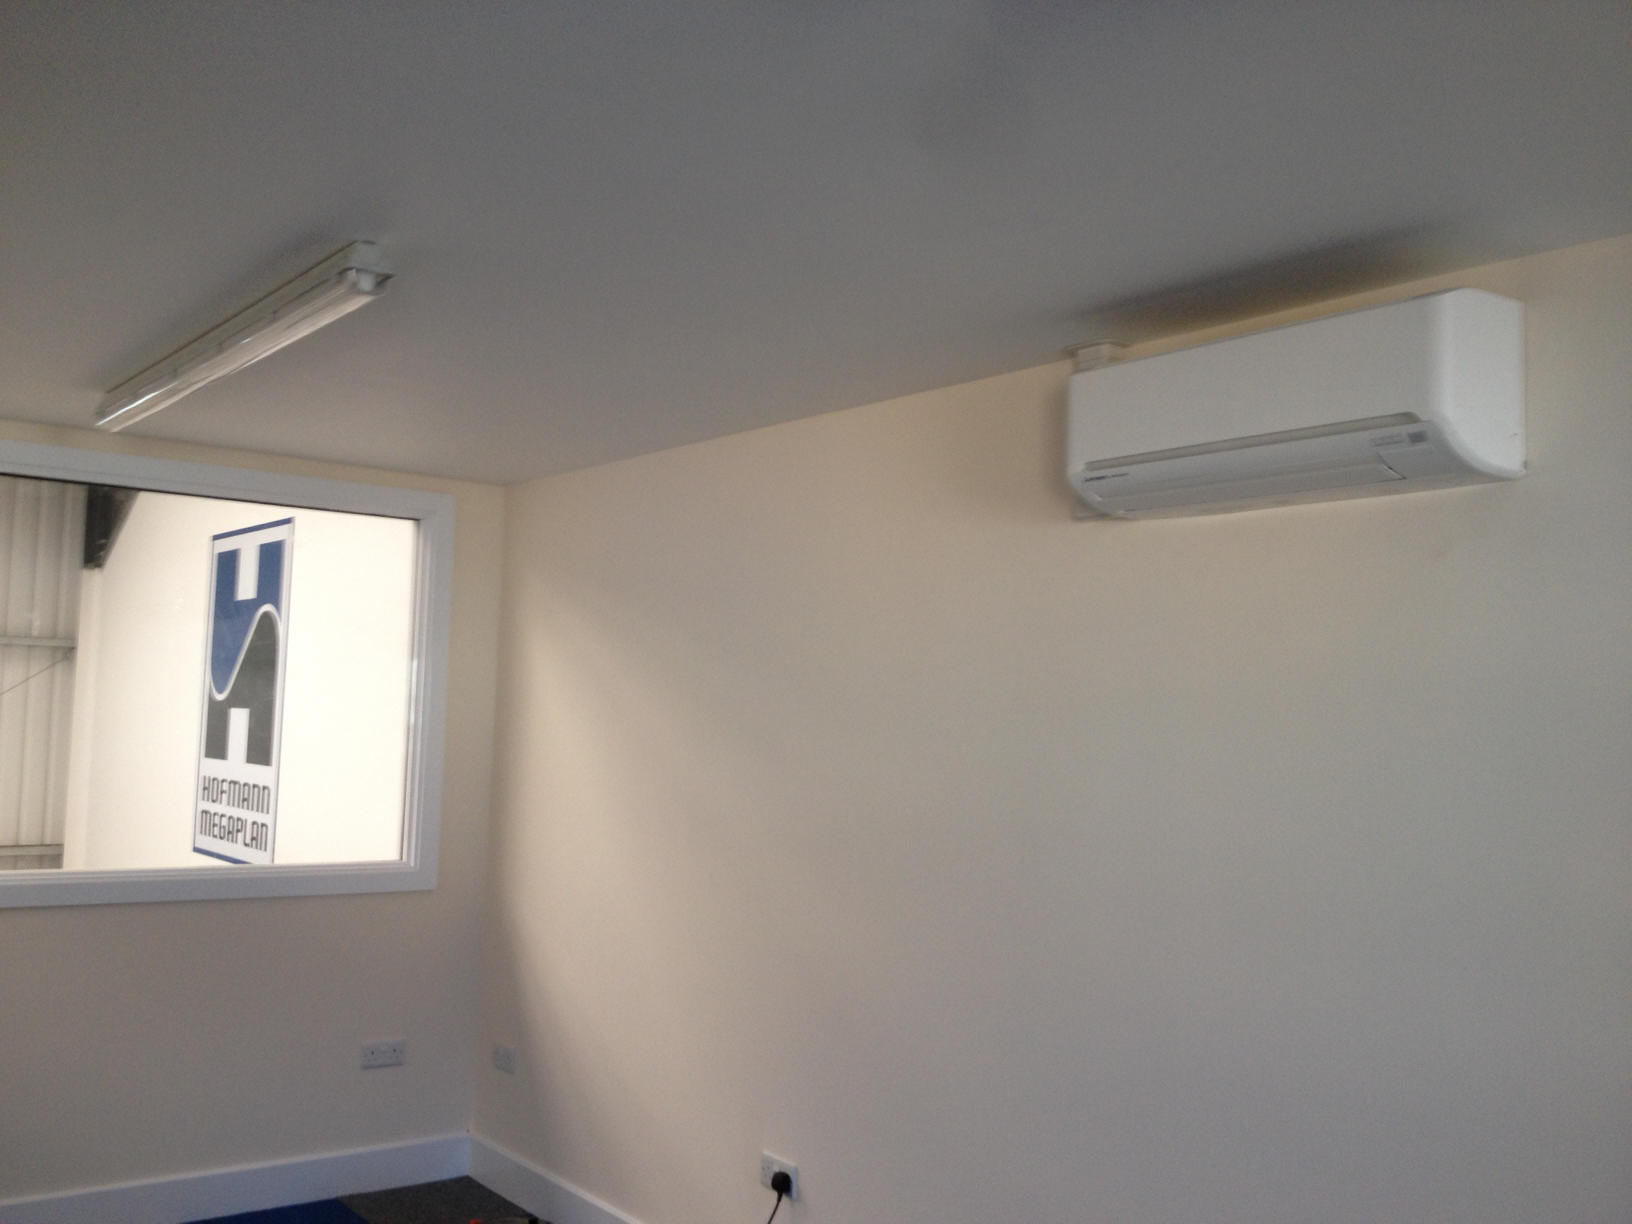 The bonus about air conditioning heat pumps for small business is when you relocate